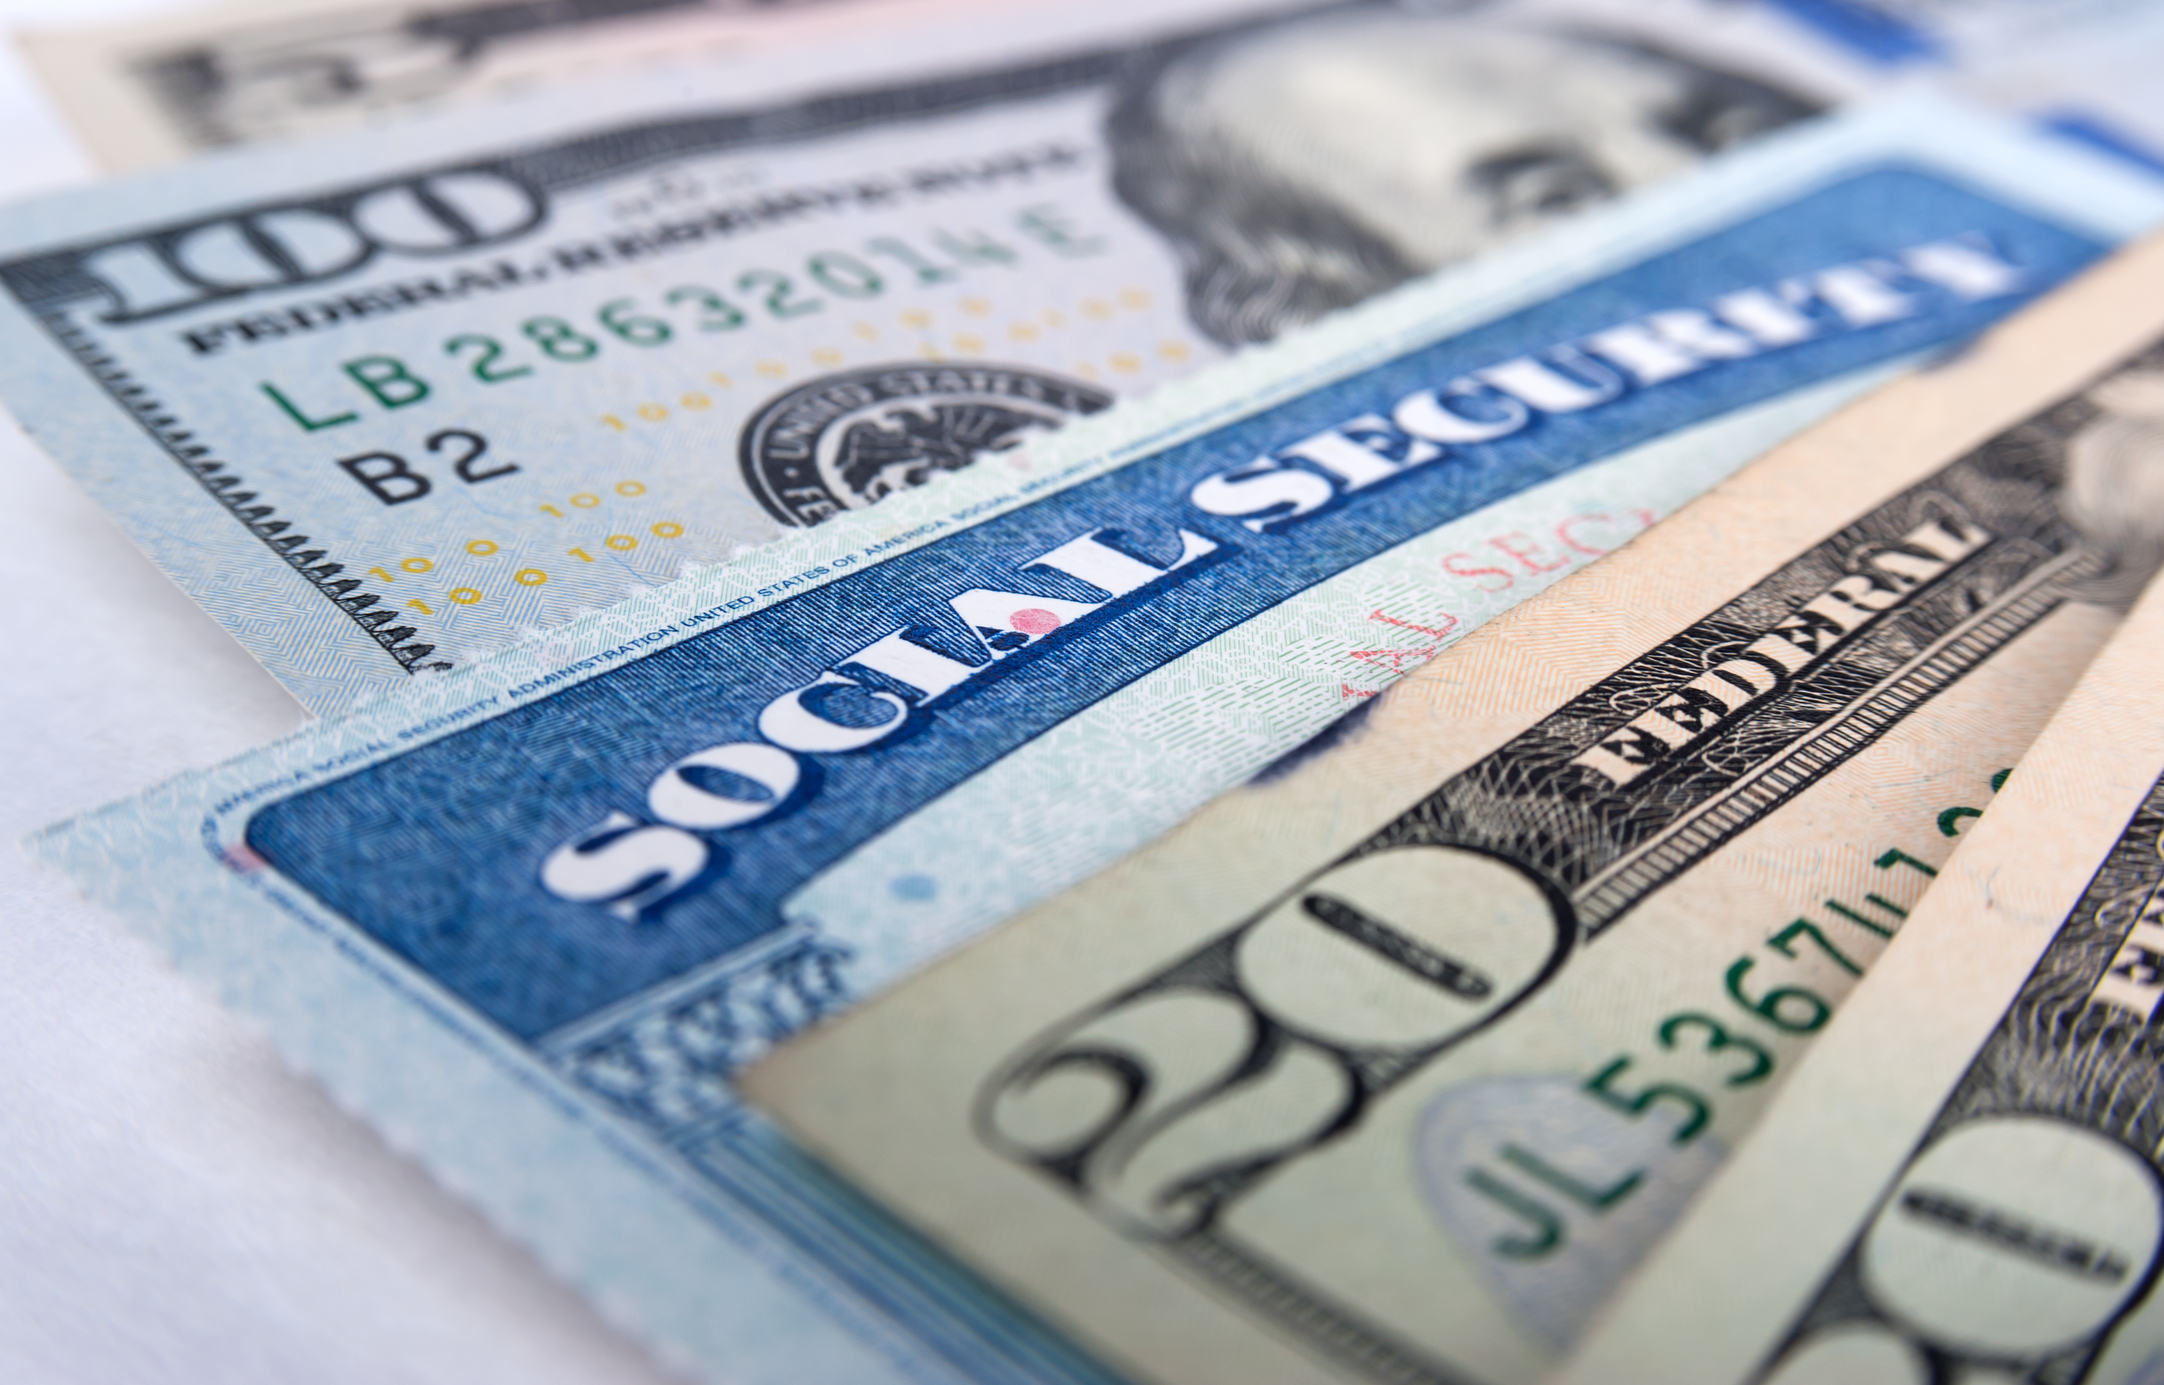 'stingy' Increase In Social Security Benefits Puts New Focus On The Need  For A Better System, Says Amac Chief Dan Weber  Amac, Inc